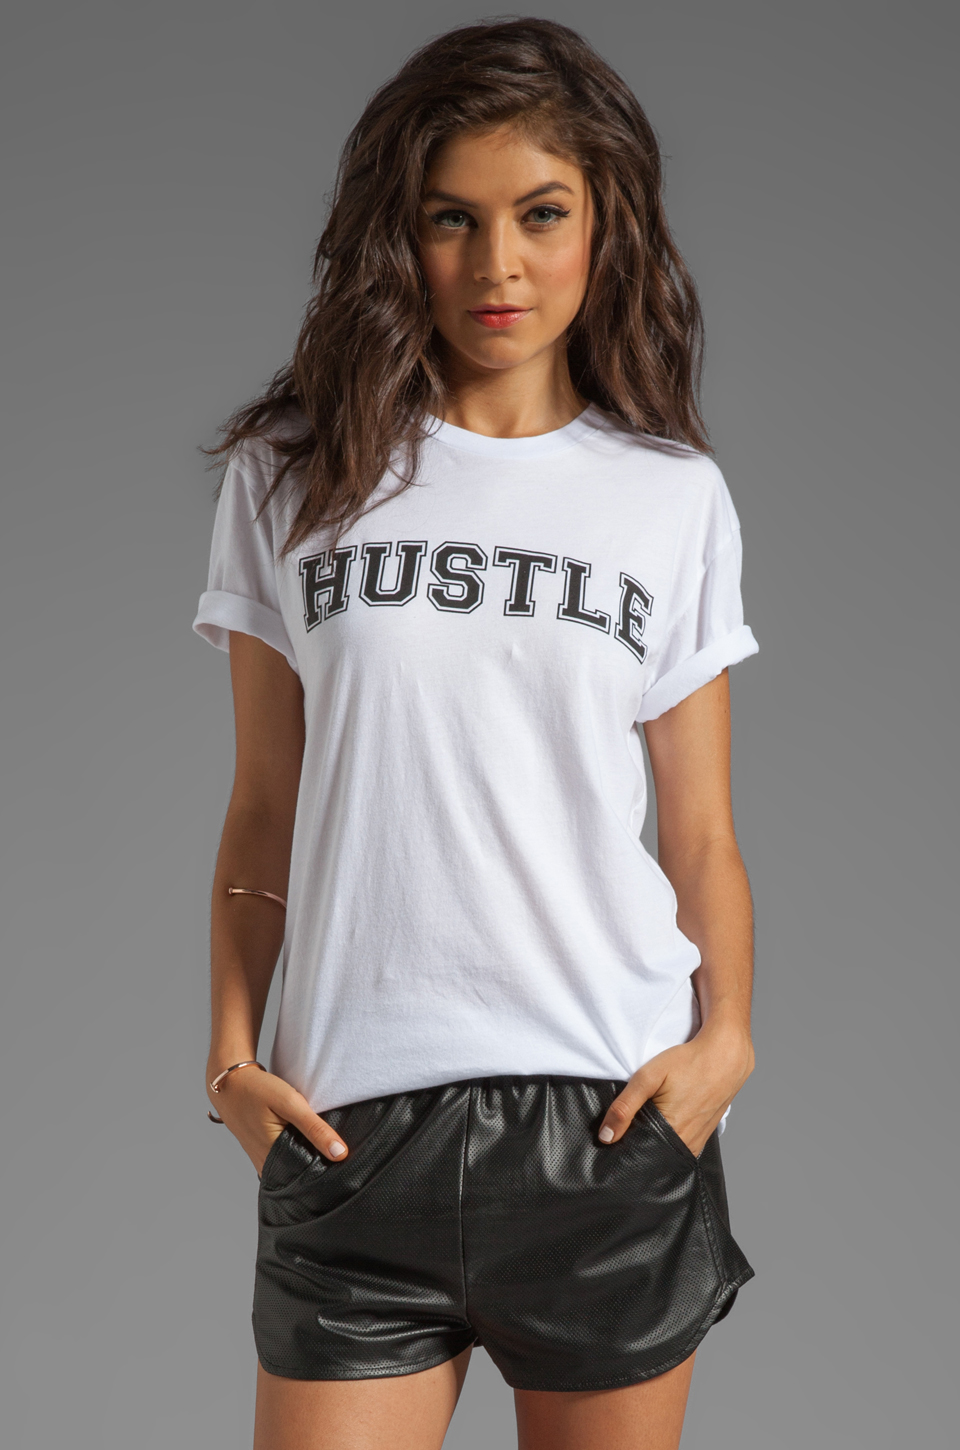 Lovers + Friends Hustle Graphic Tee in White